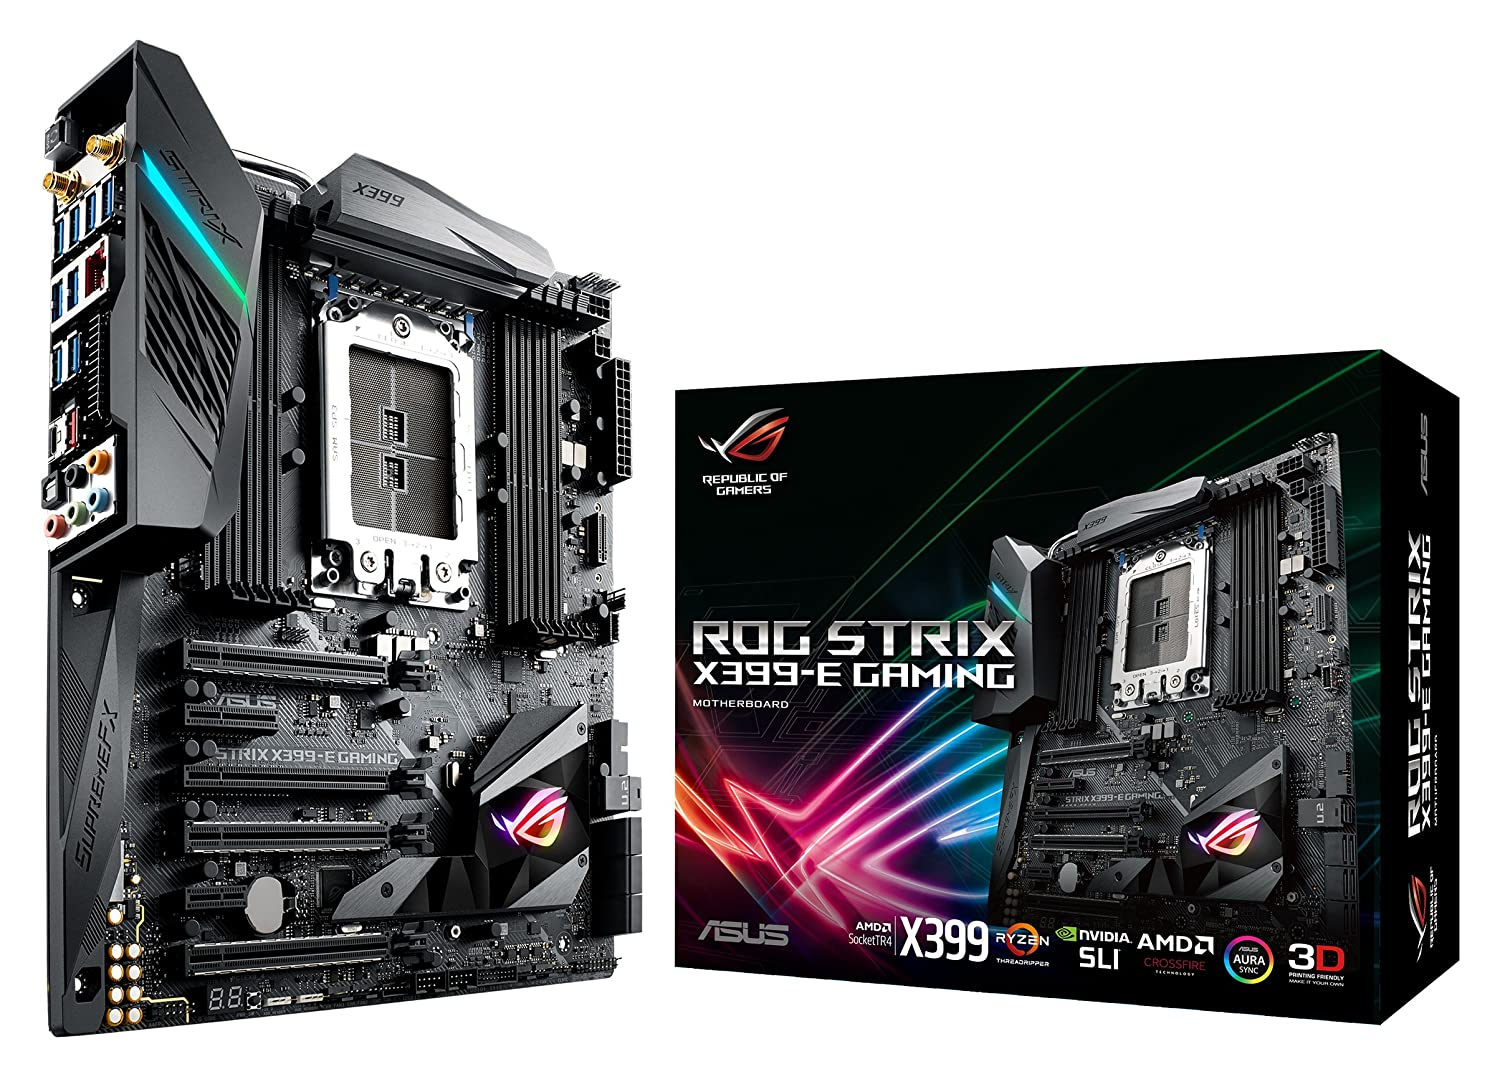 Amazon in: Buy ASUS ROG STRIX X399-E GAMING AMD Ryzen